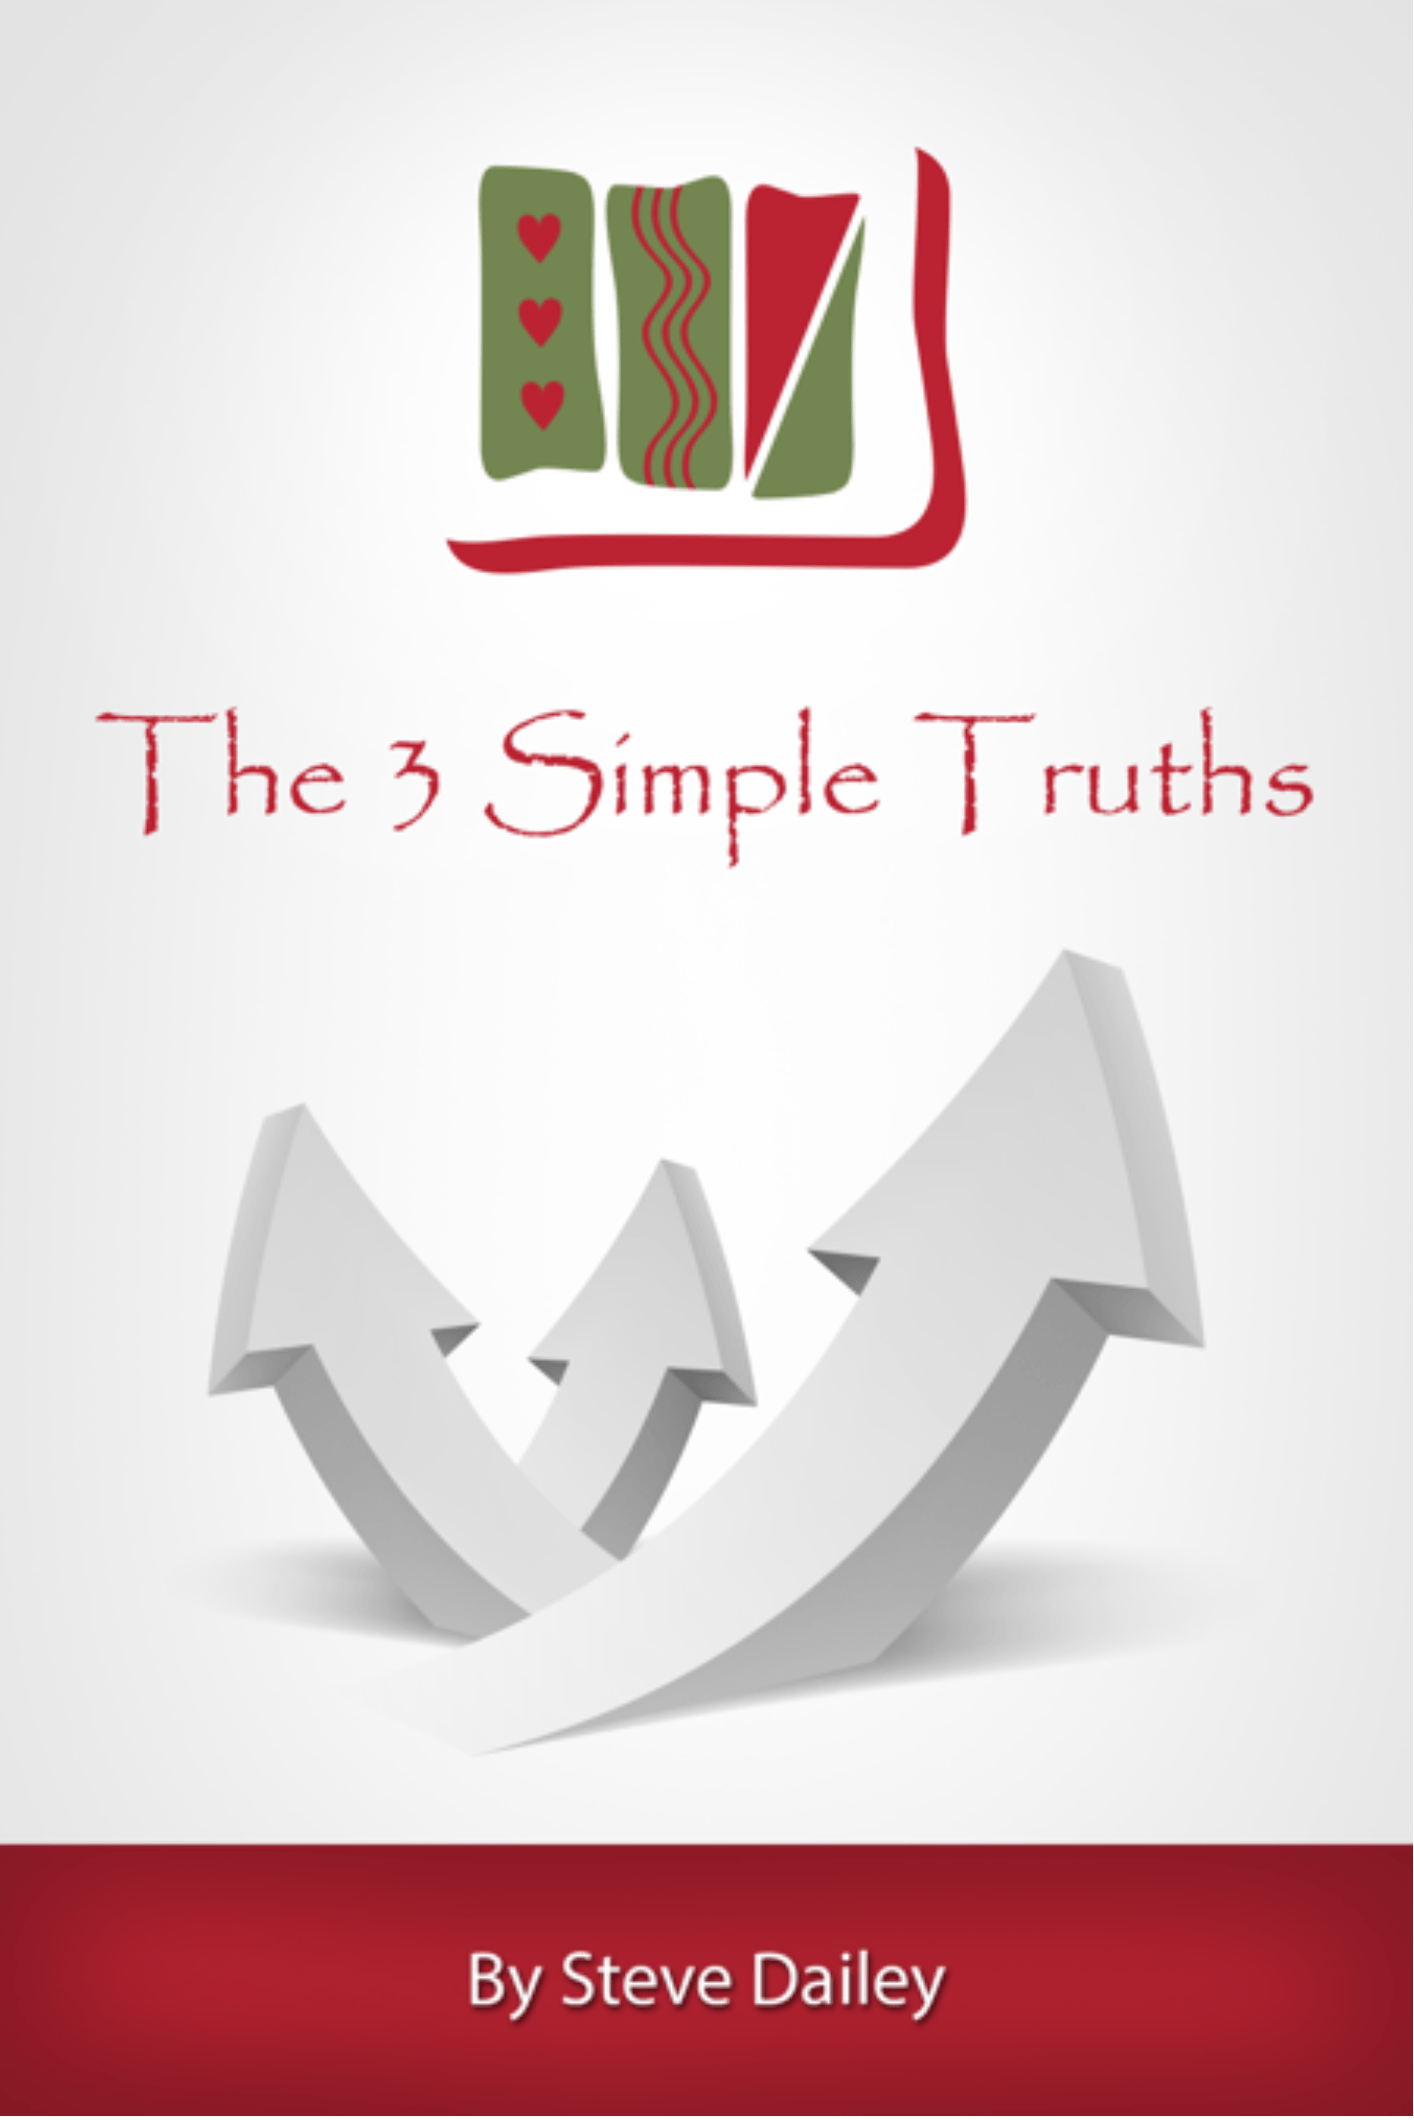 The 3 Simple Truths